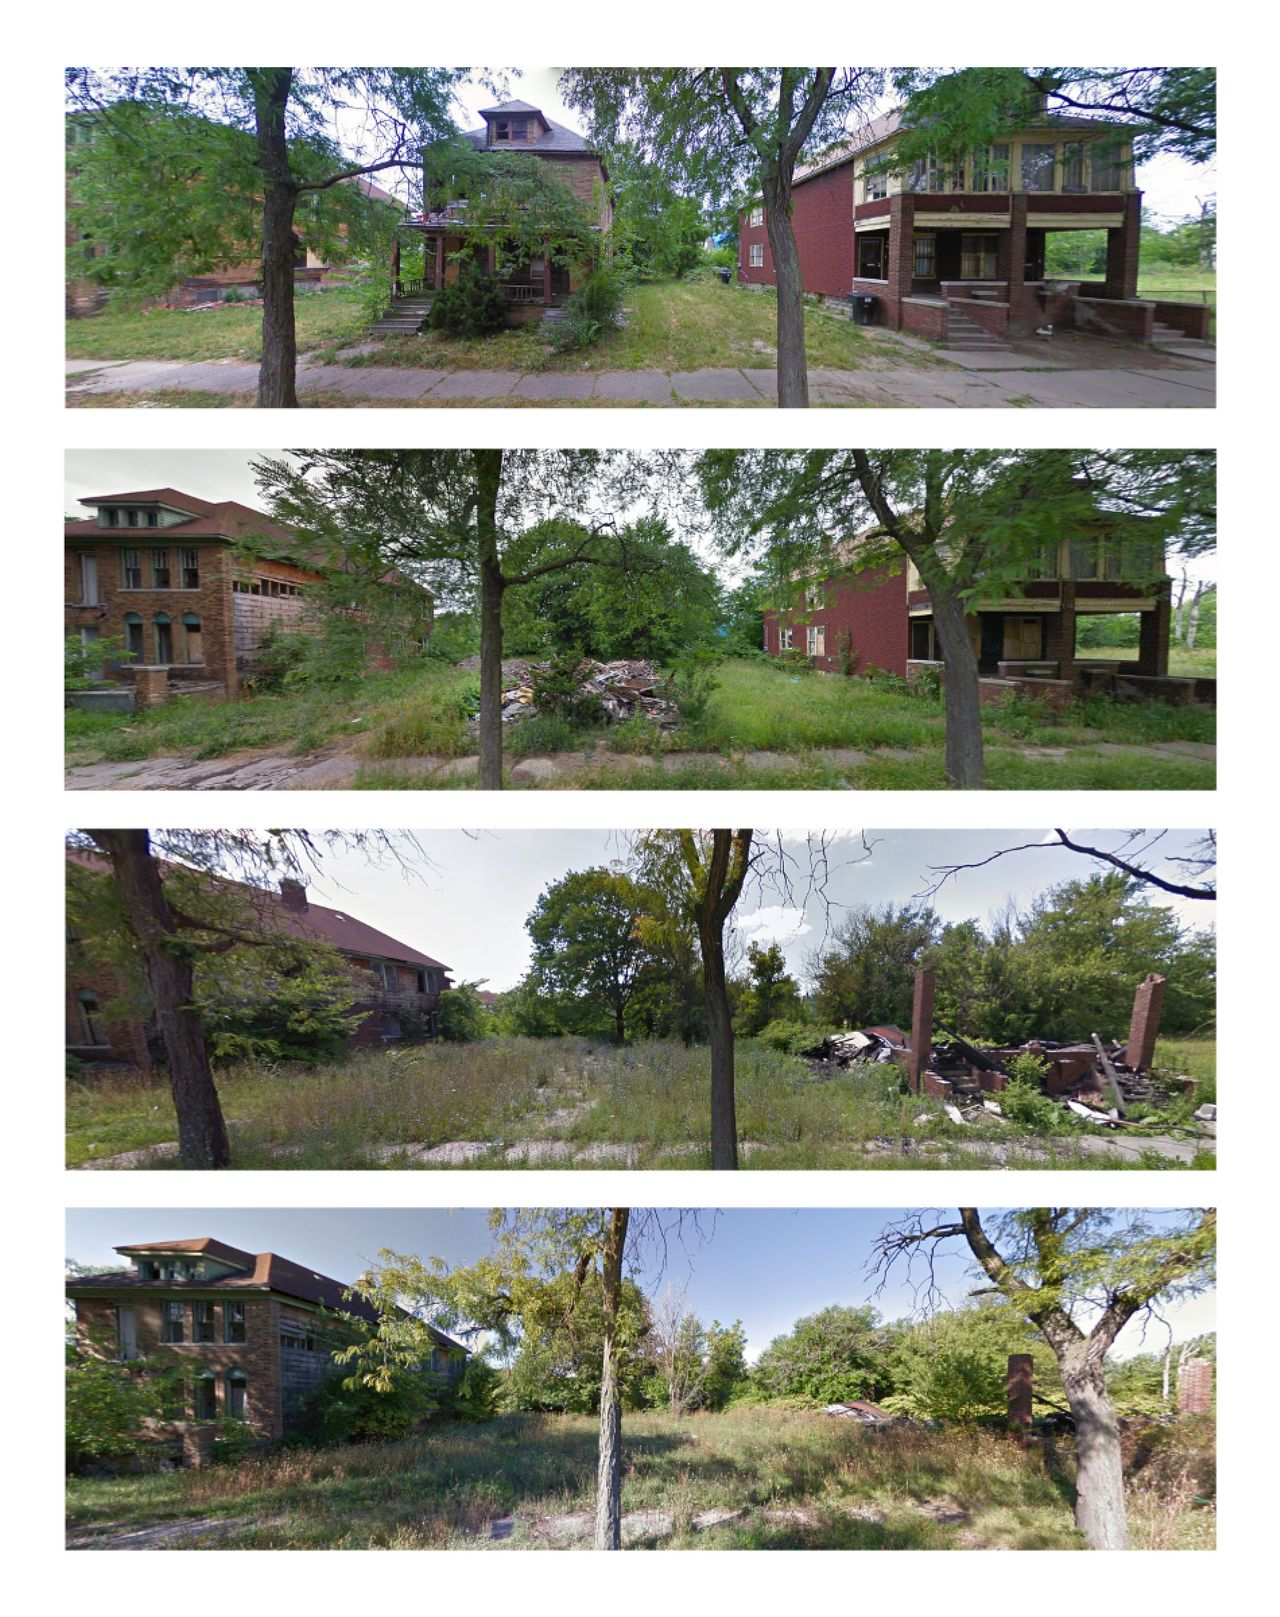 Northfield Street in the Southwest neighborhood of Detroit is shown in July 2009, June 2011, July 2013 and September 2015 Google and Bing images.